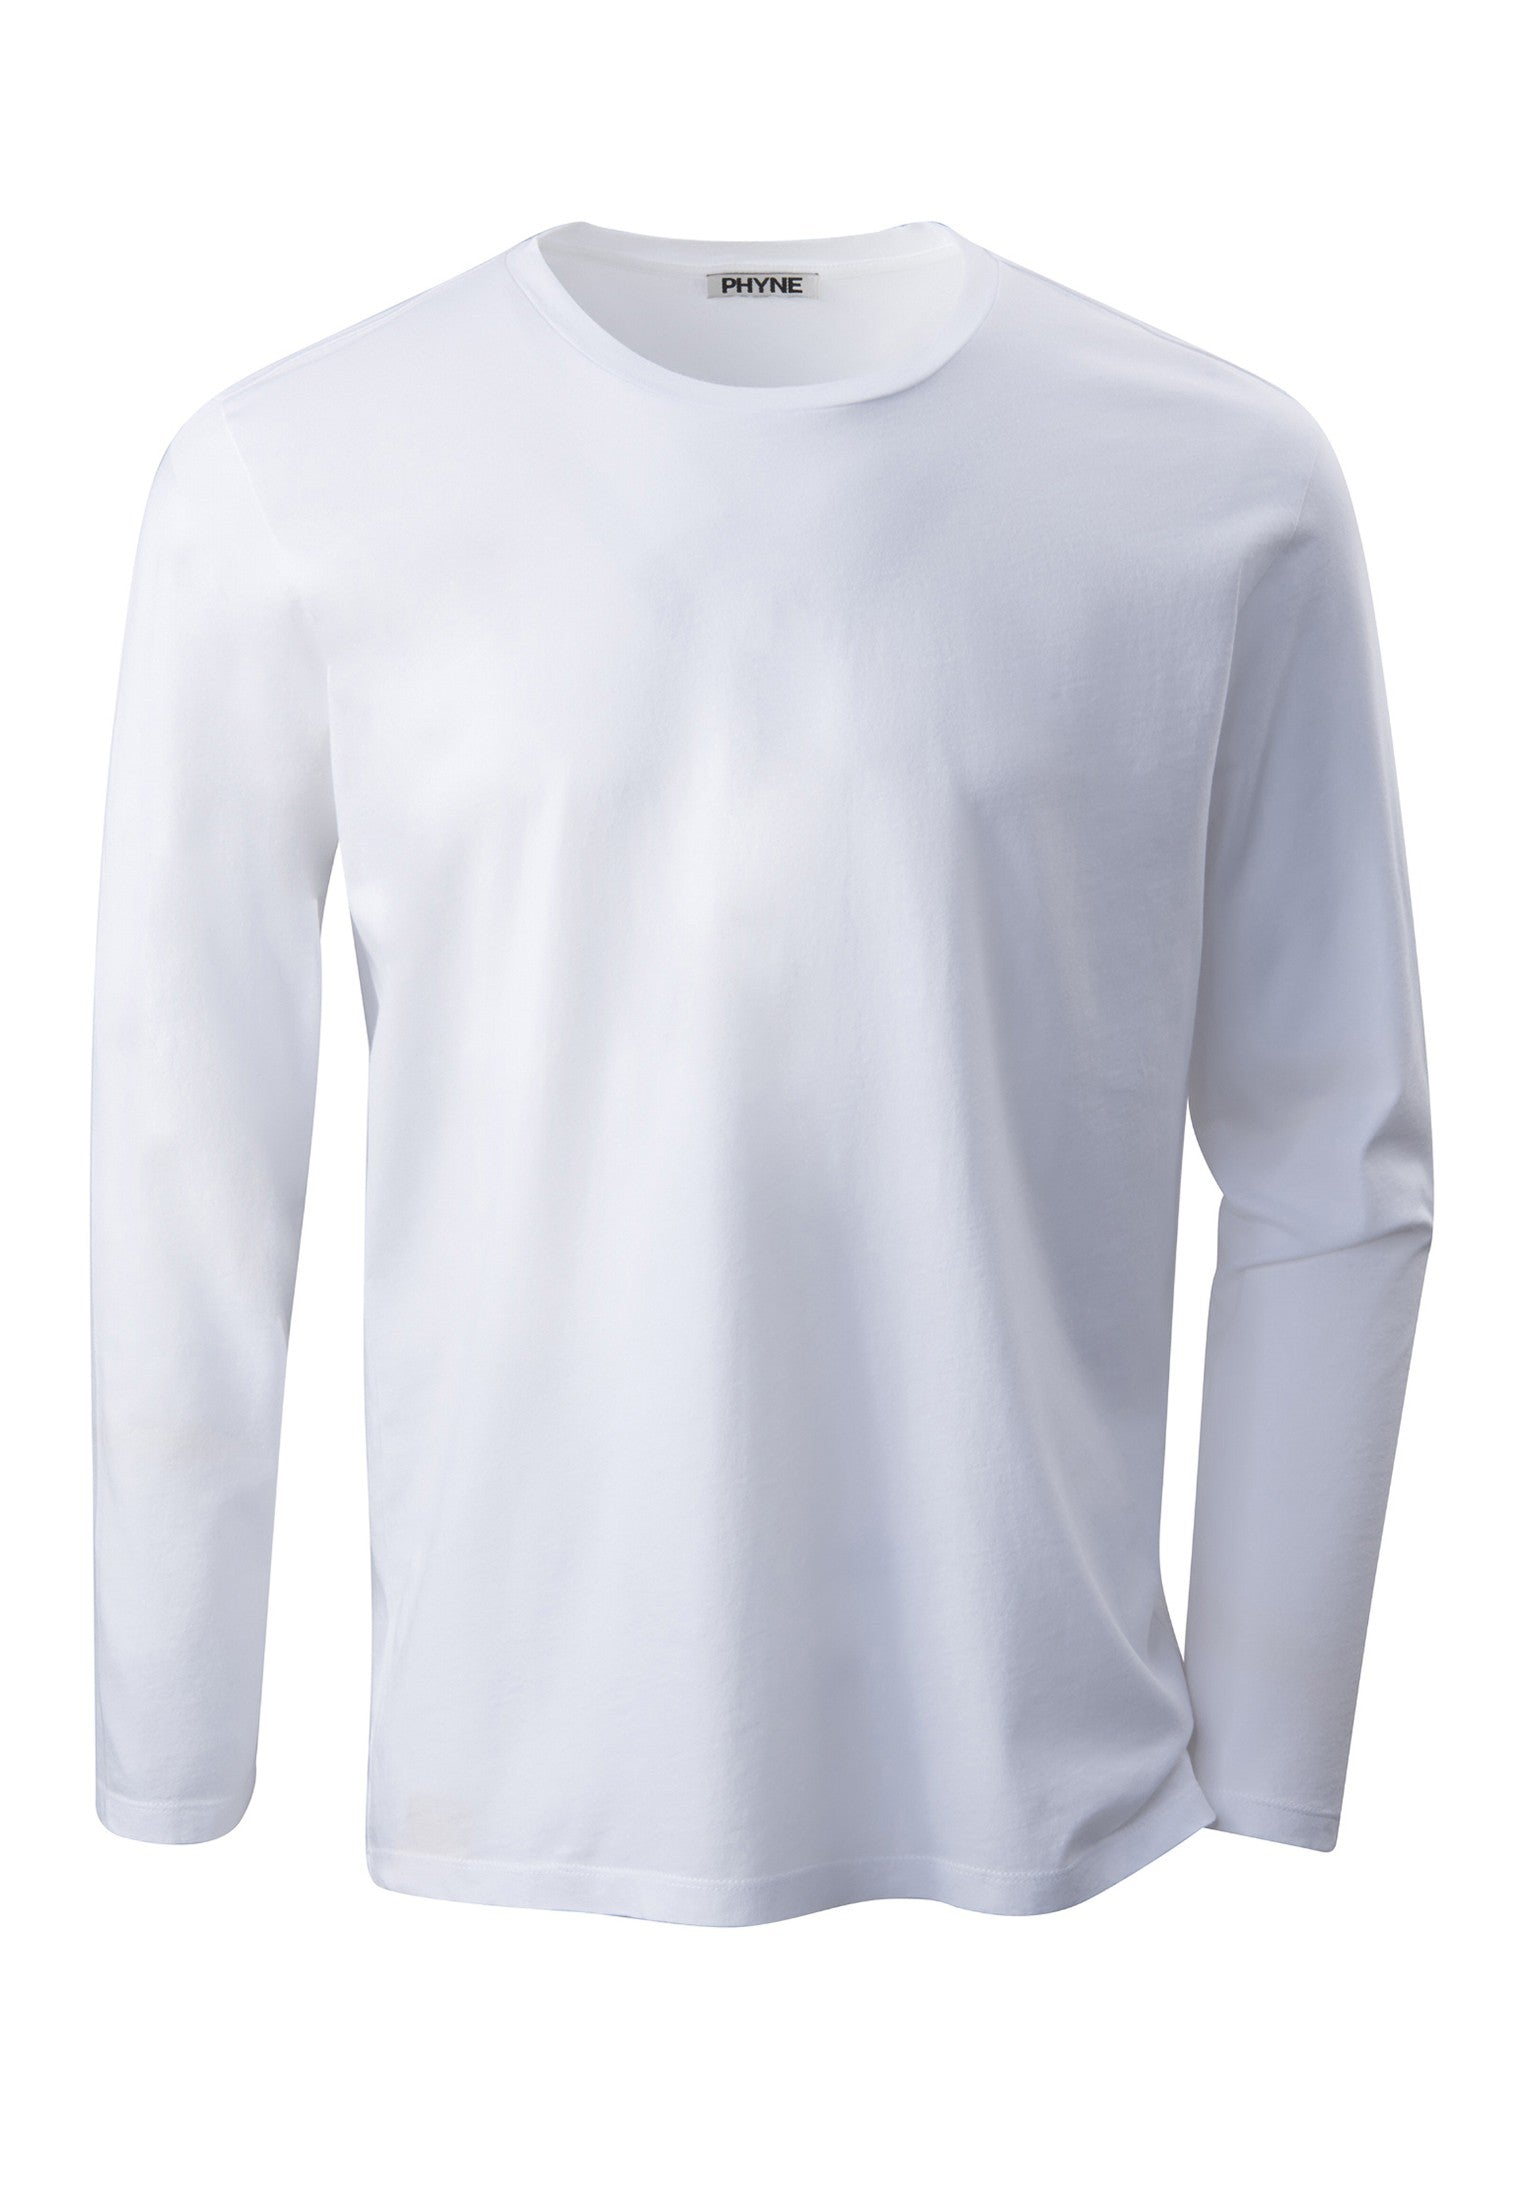 The Longsleeve White